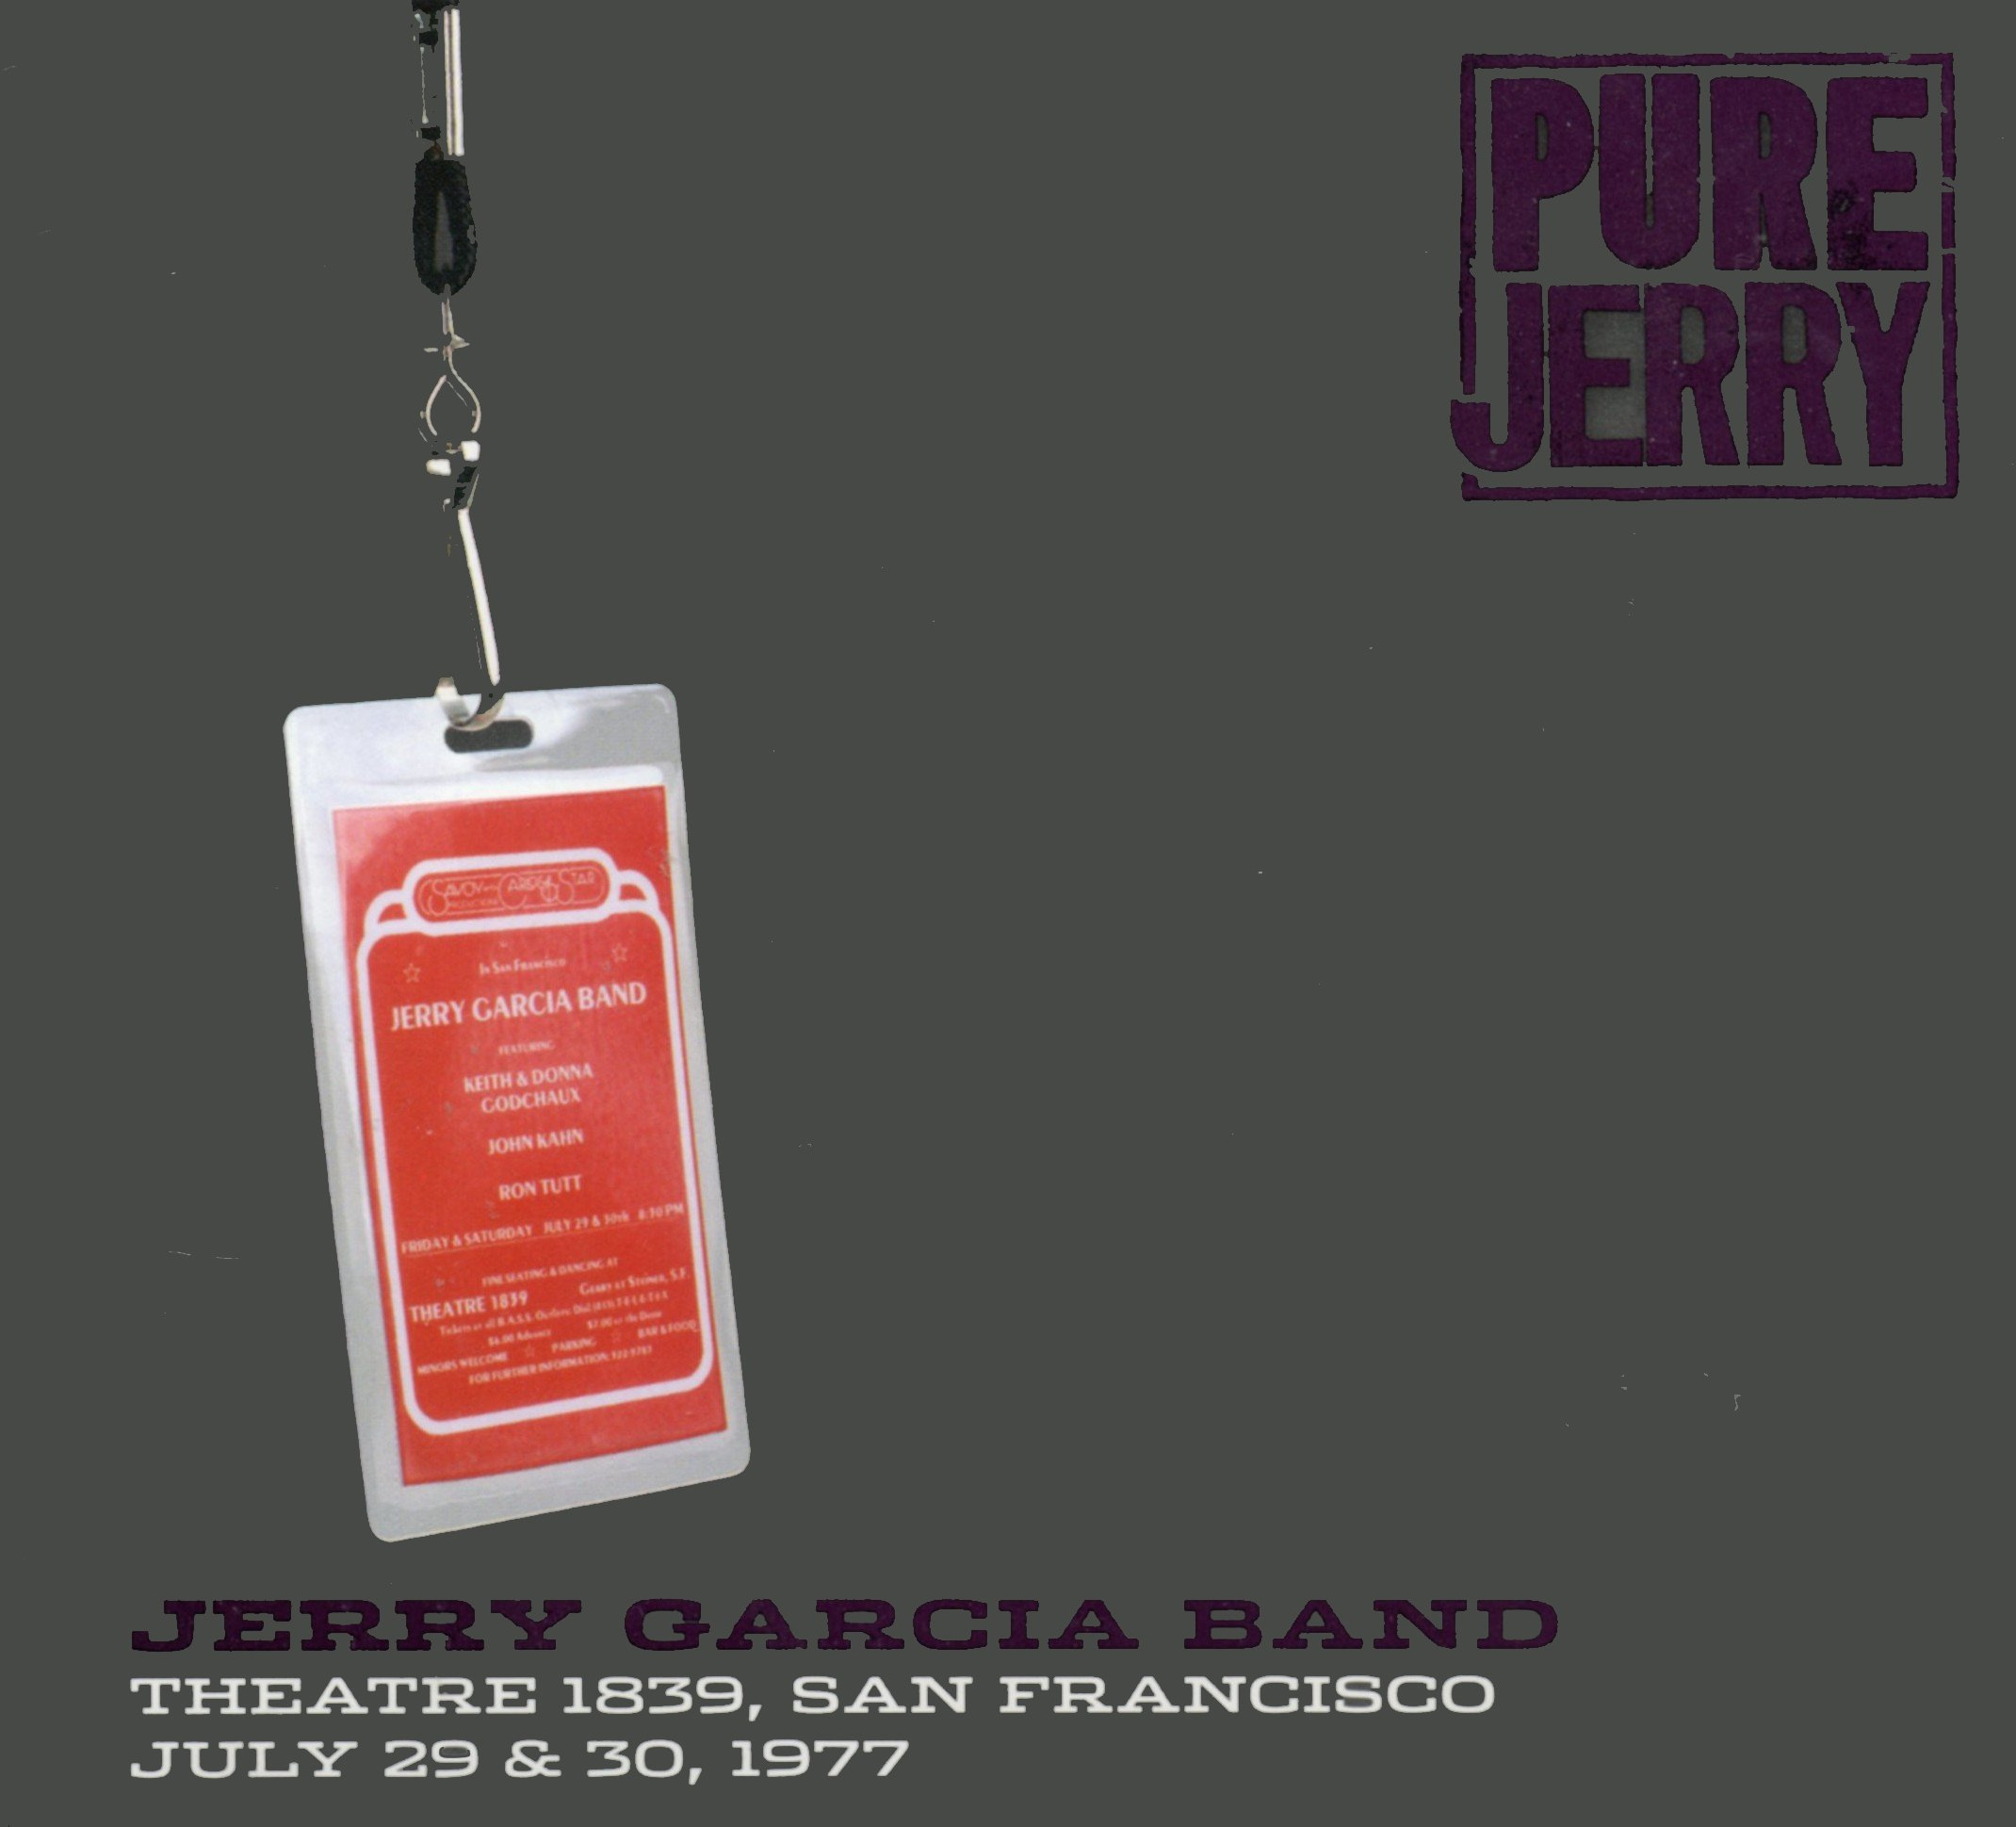 Pure Jerry: Theatre 1839, San Francisco, July 29 & 30, 1977